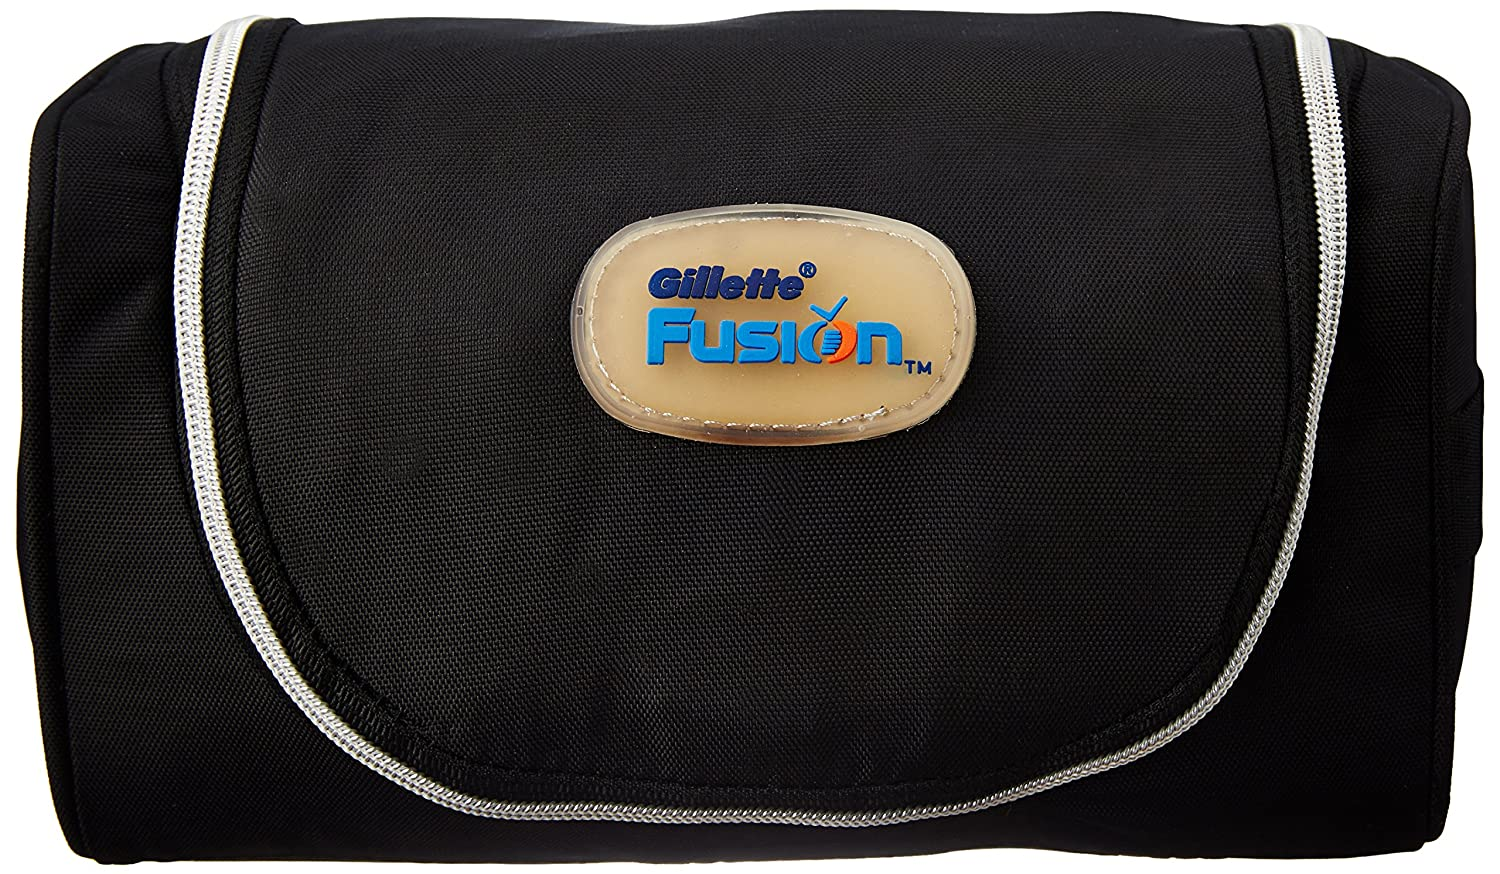 Free Gillette Kit Bag with Gillette Fusion Gift Pack